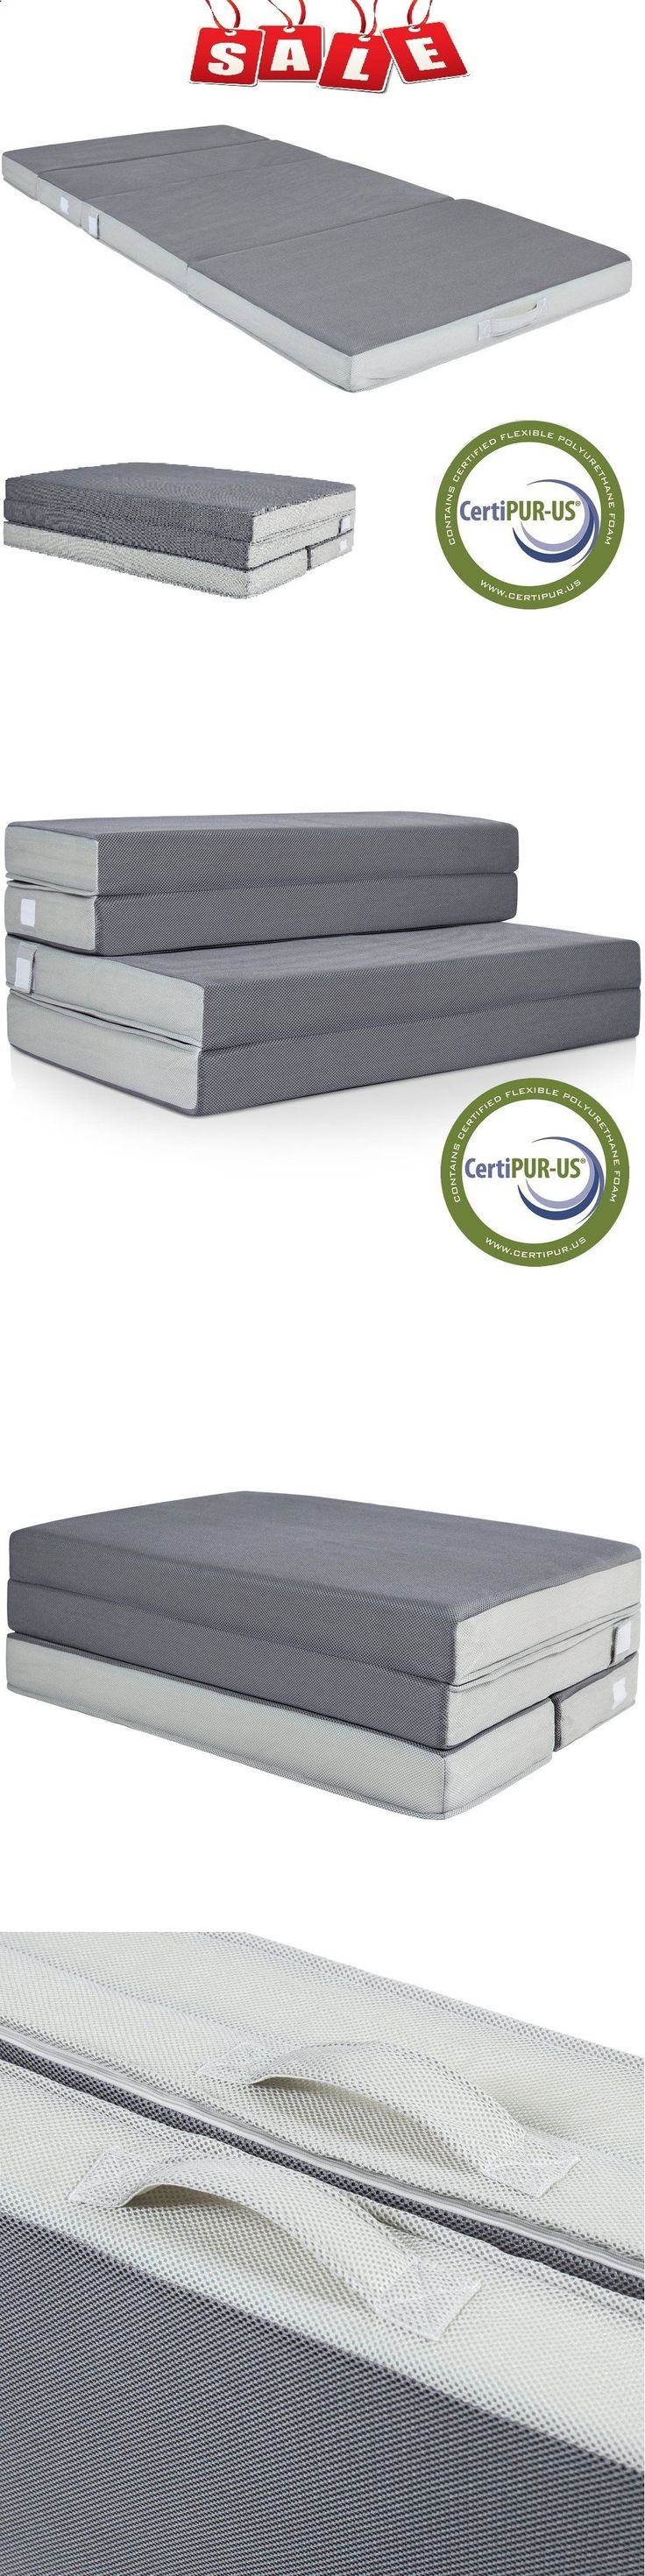 camping sleeping pad mattresses and pads folding portable queen mattress sleeping pad camping